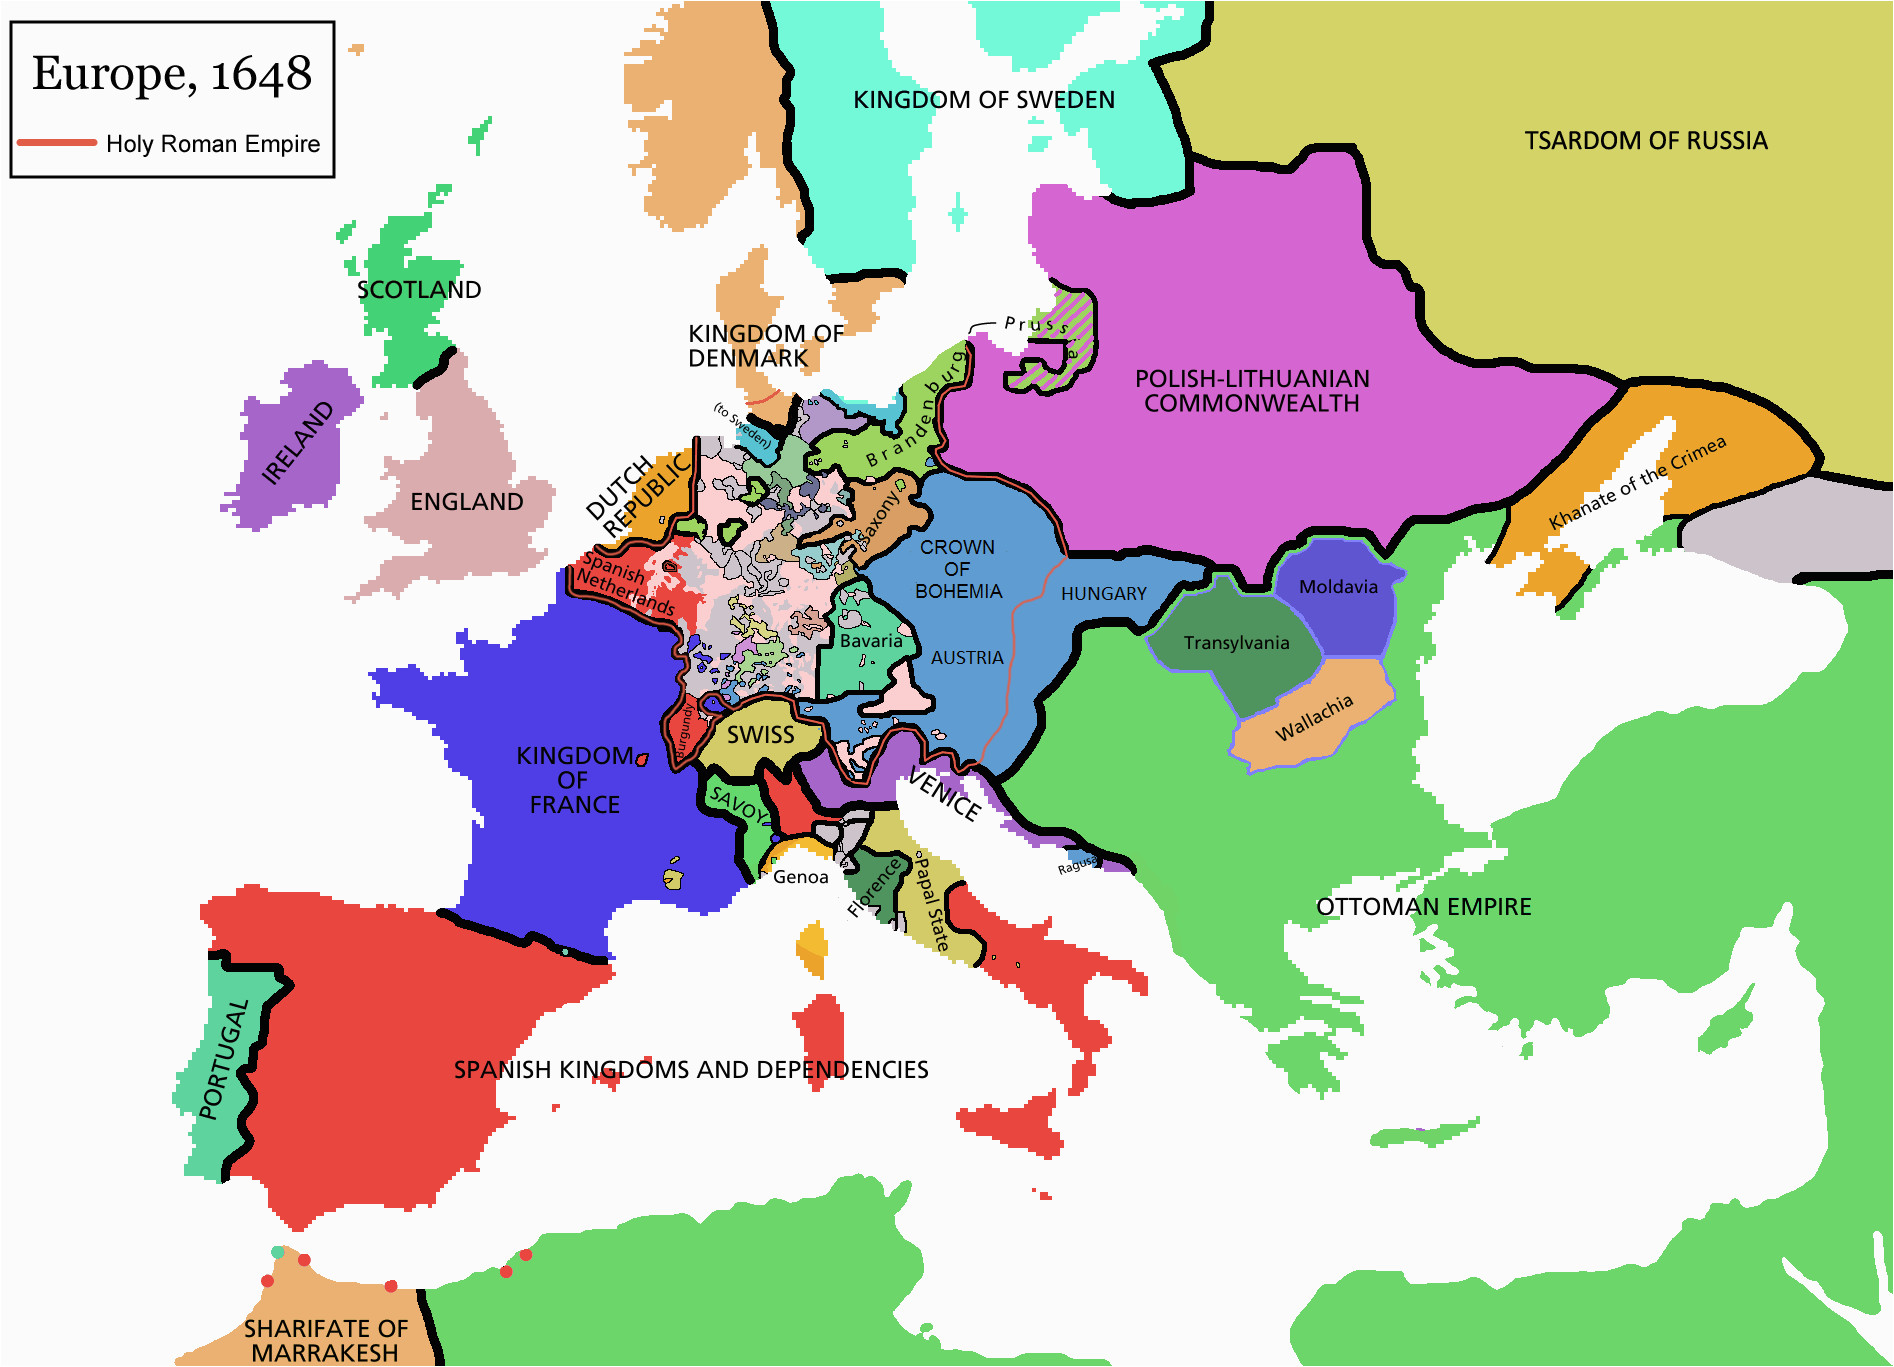 Map Of Europe In 1600 atlas Of European History Wikimedia Commons